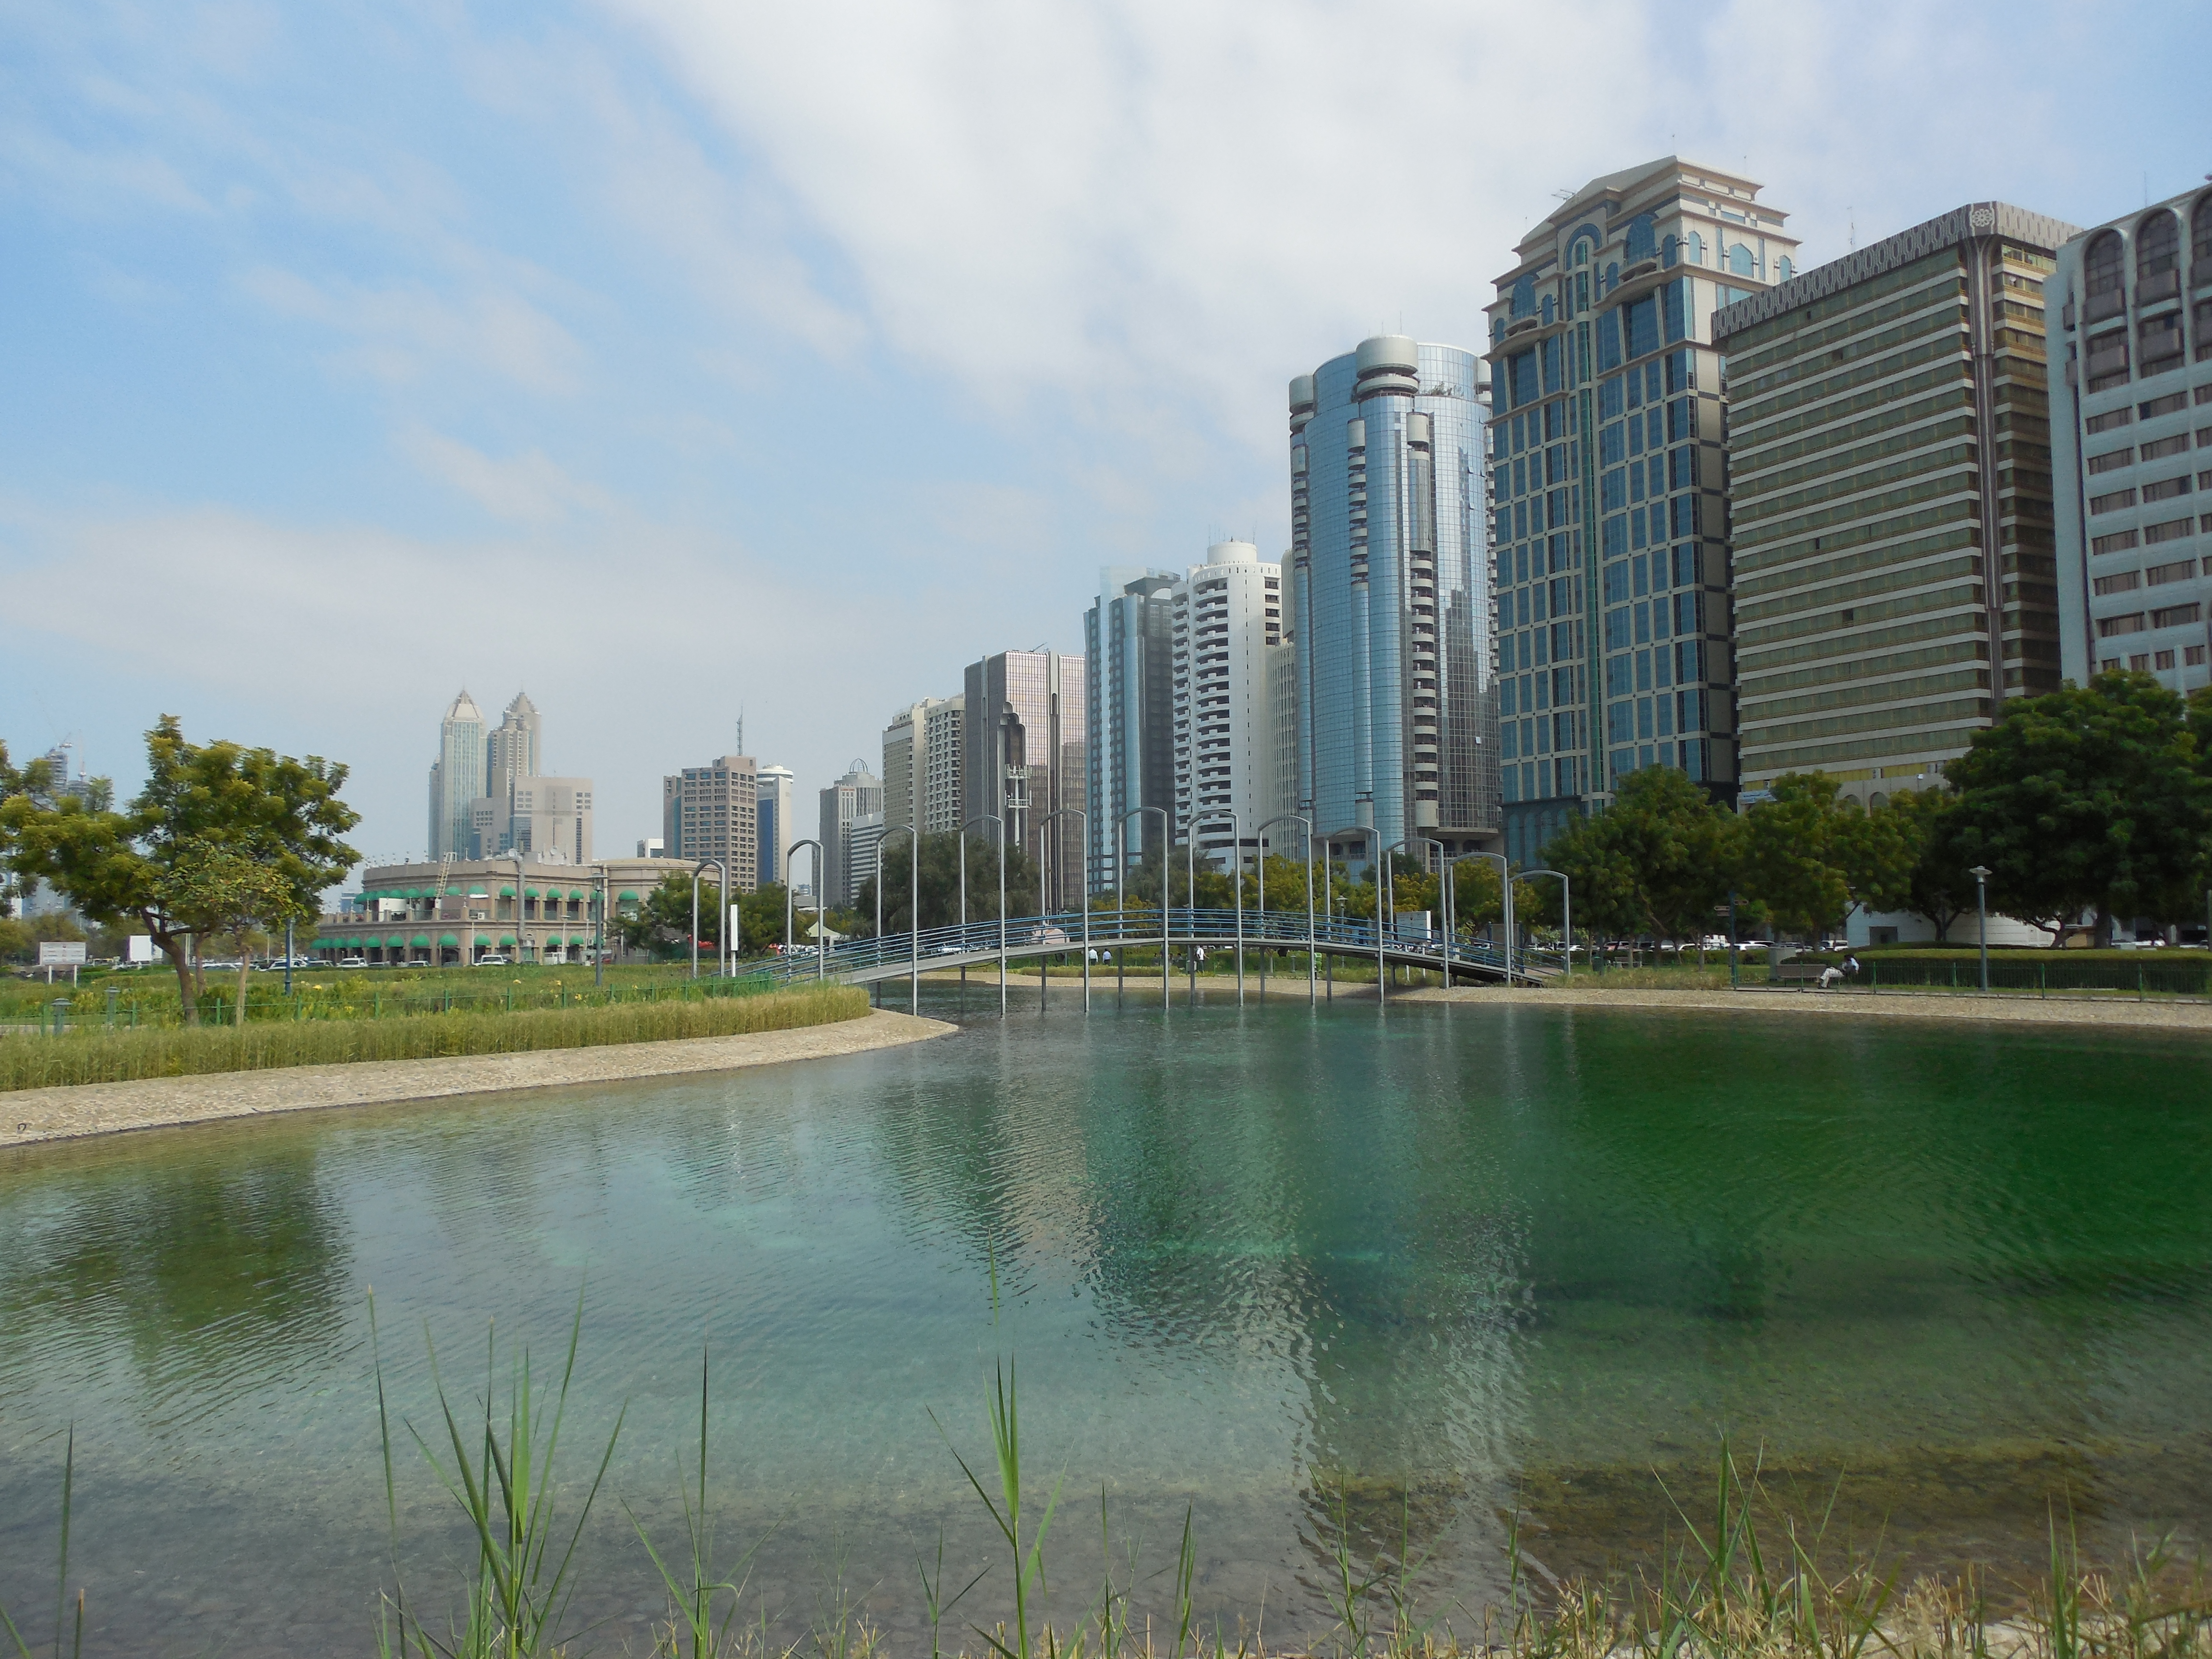 A view from Lake Park in Abu Dhabi, UAE